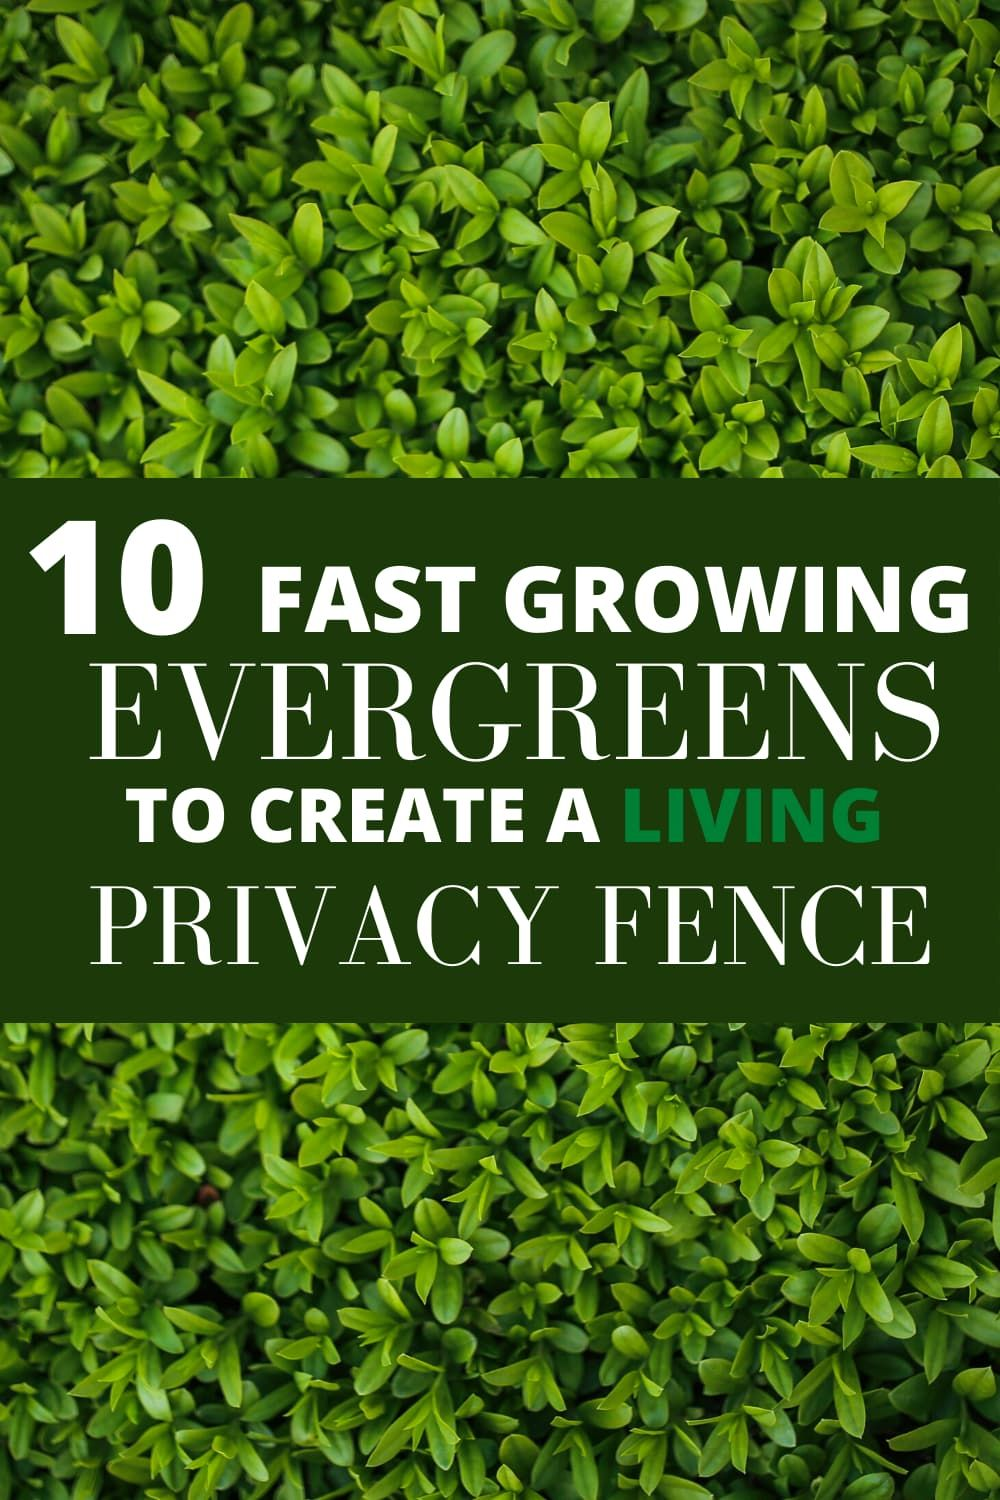 10 Fast Growing Evergreen Trees For Privacy Garden Down South In 2020 Fast Growing Evergreens Living Privacy Fences Privacy Hedges Fast Growing